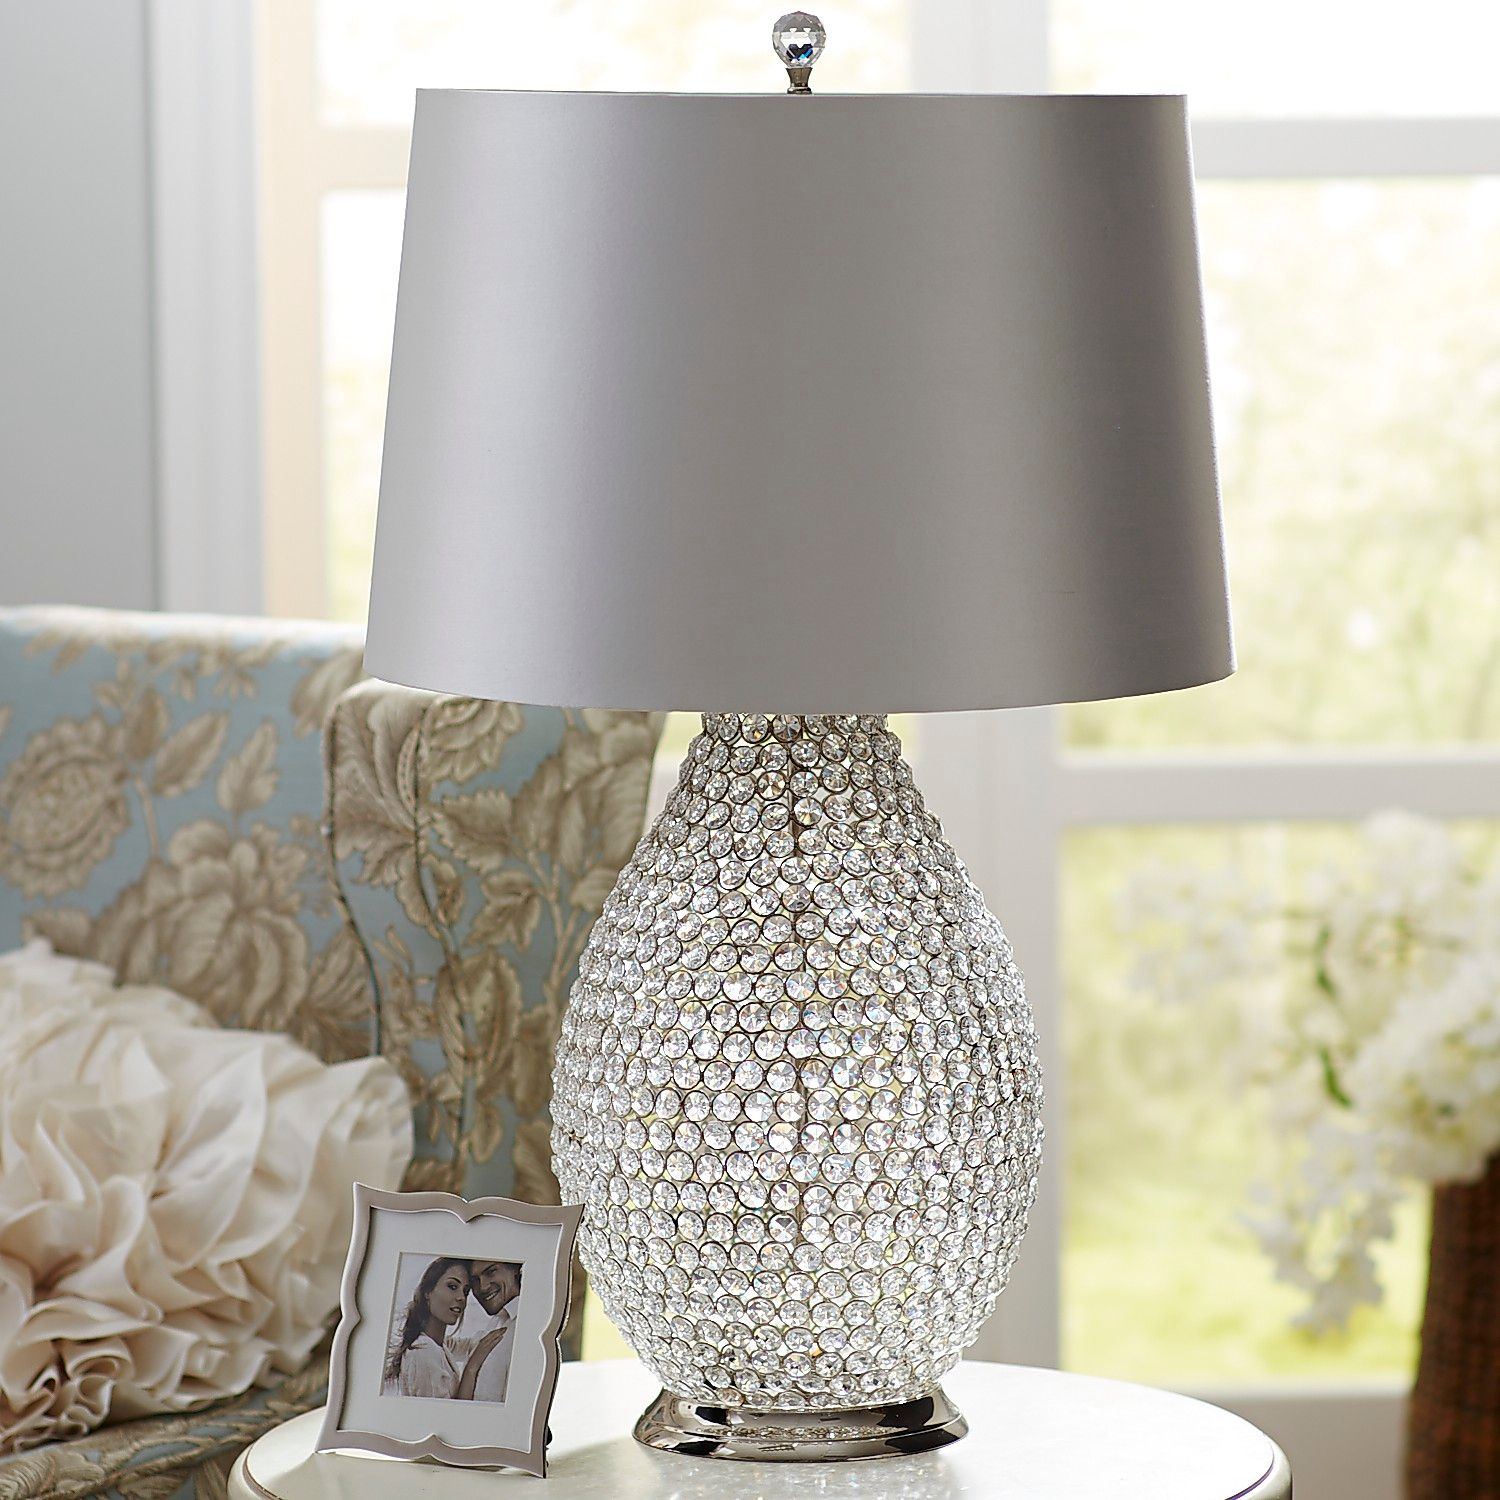 white crystal table lamp pier imports one accent lamps chinese shades outdoor wicker furniture ikea storage baskets espresso color coffee cool retro tablecloth sisal runner red